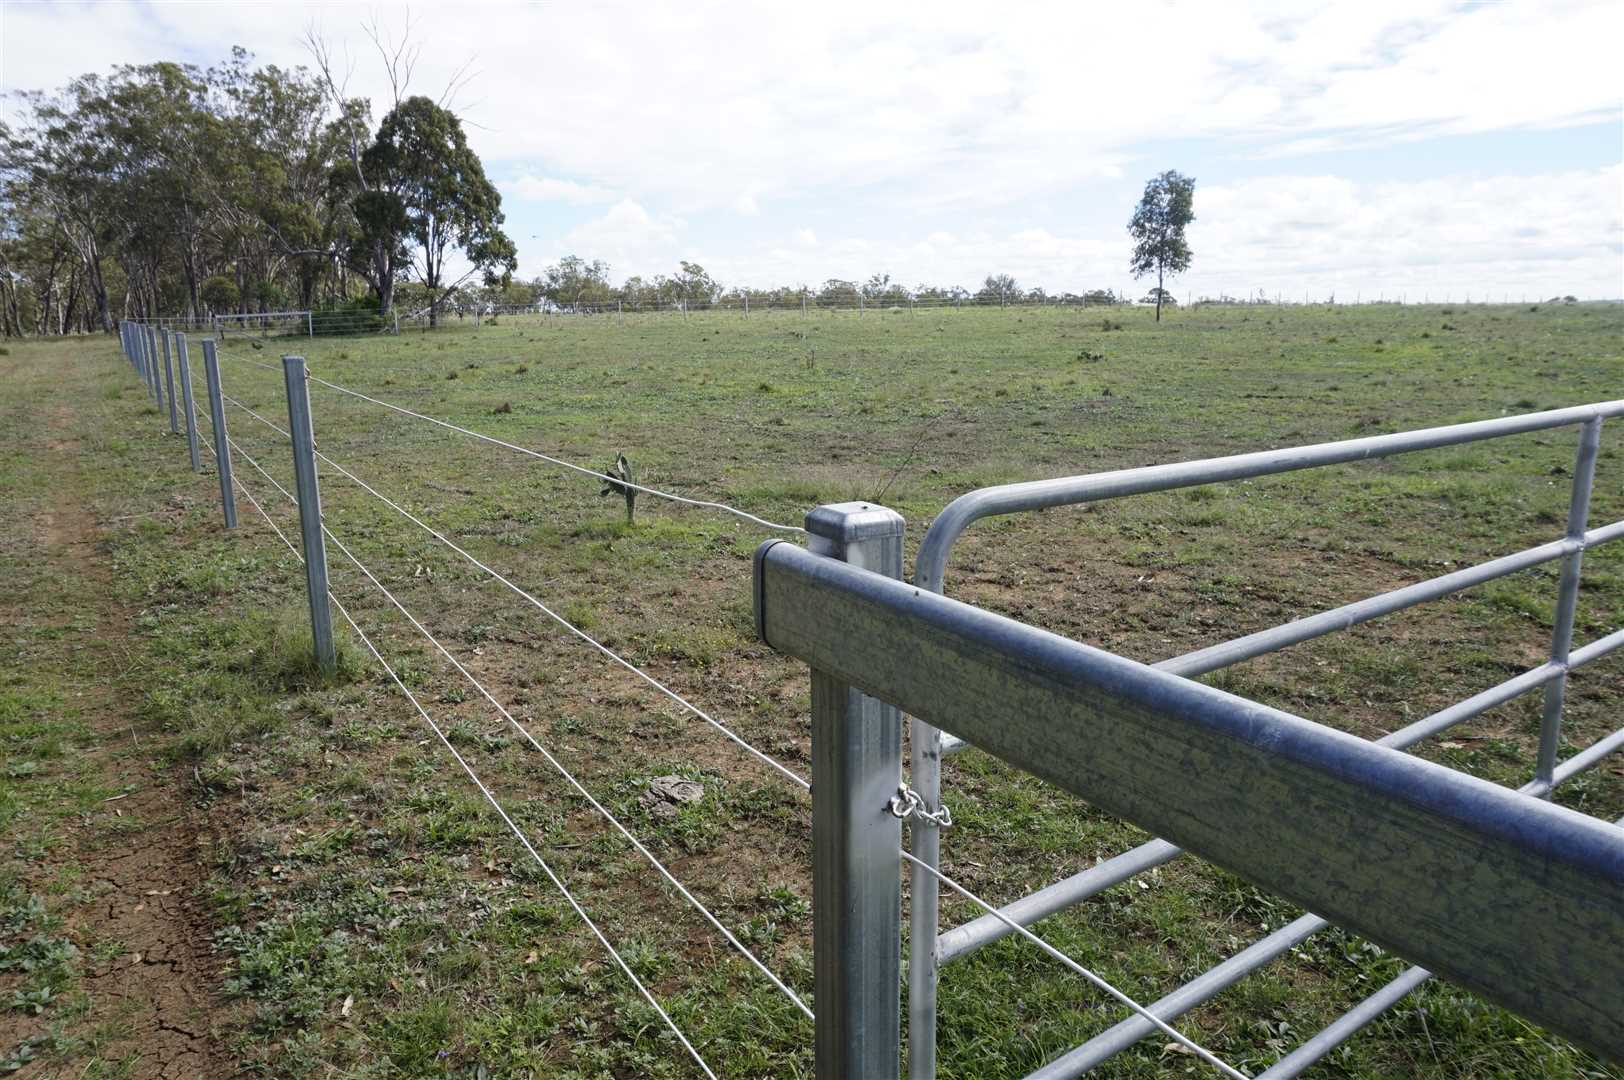 Plain Wire Internal Fencing